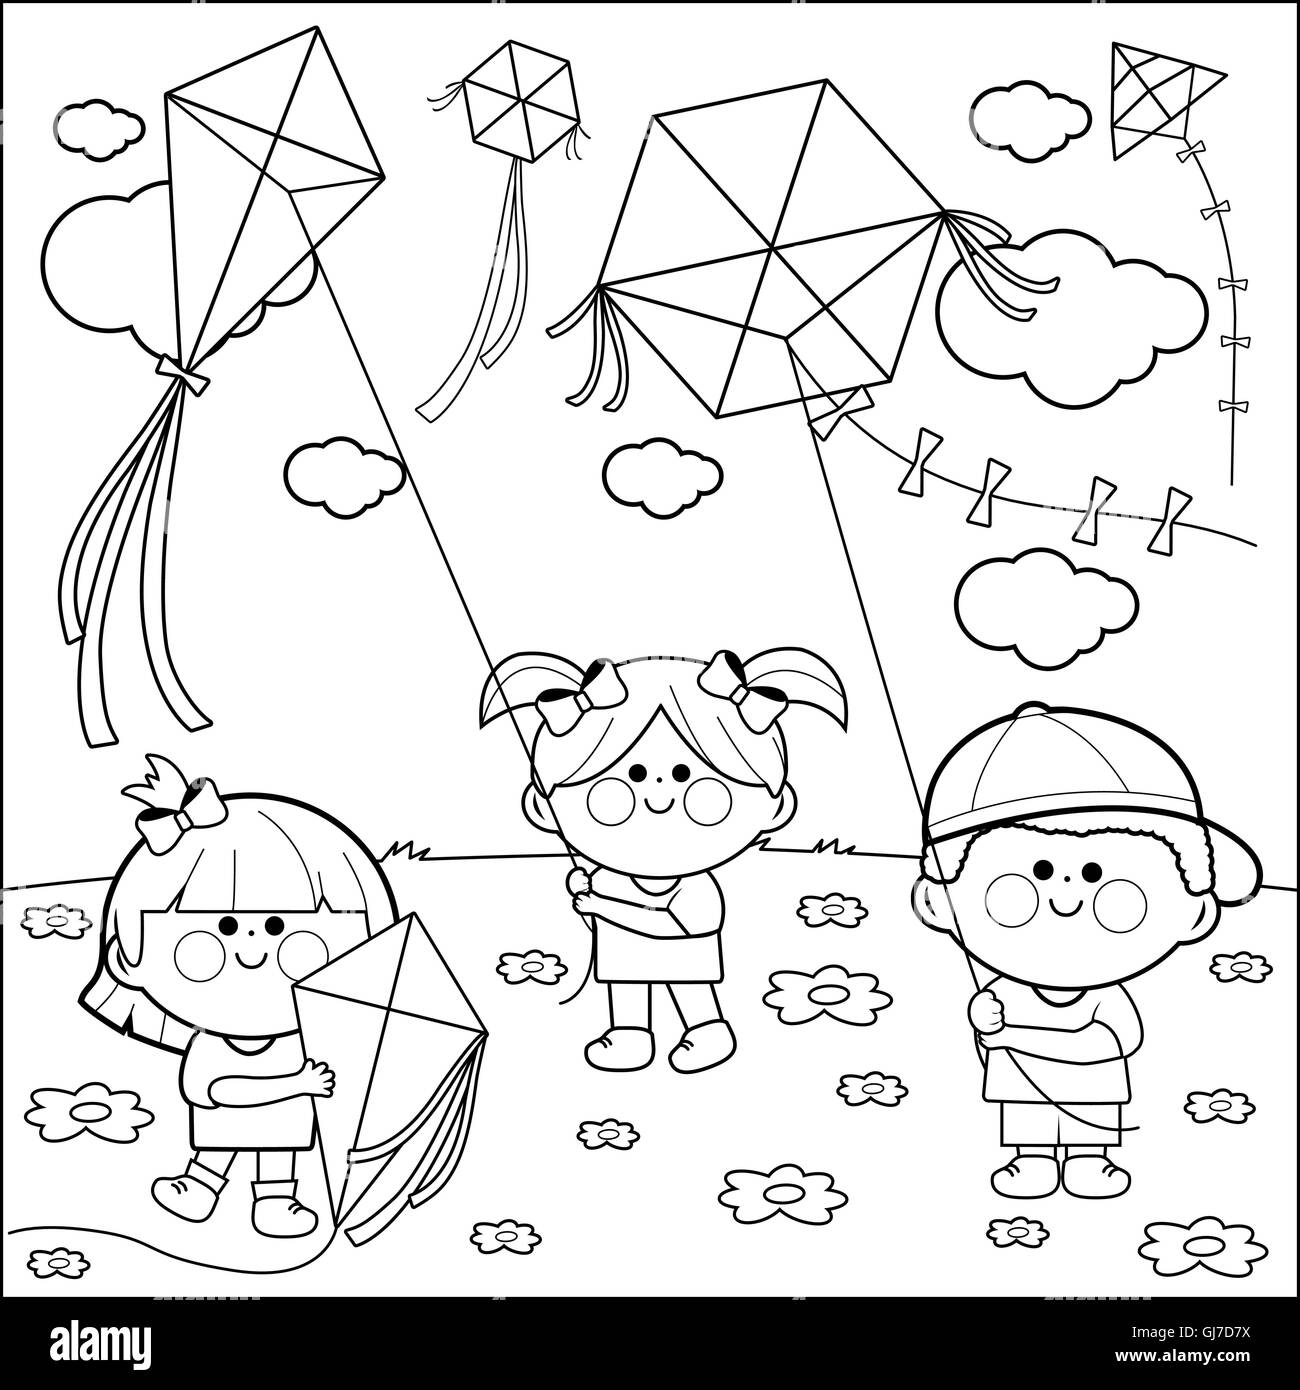 Kite Drawing Black And White Stock Photos Amp Images